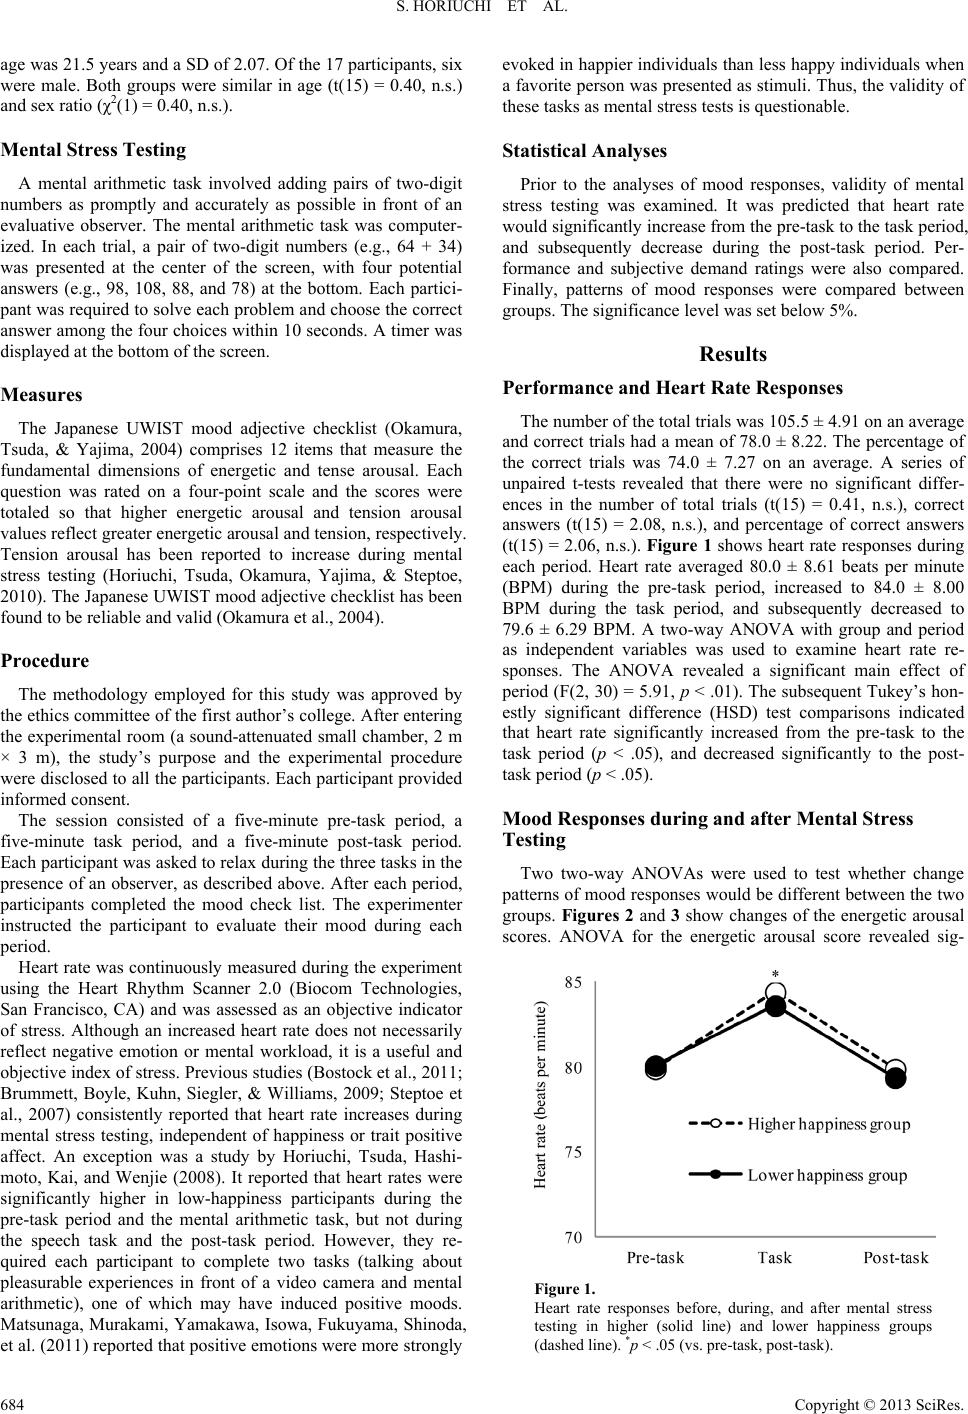 Association of increased levels of happiness with reduced levels of association of increased levels of happiness with reduced levels of tension and anxiety after mental stress testing in japanese college students spiritdancerdesigns Images